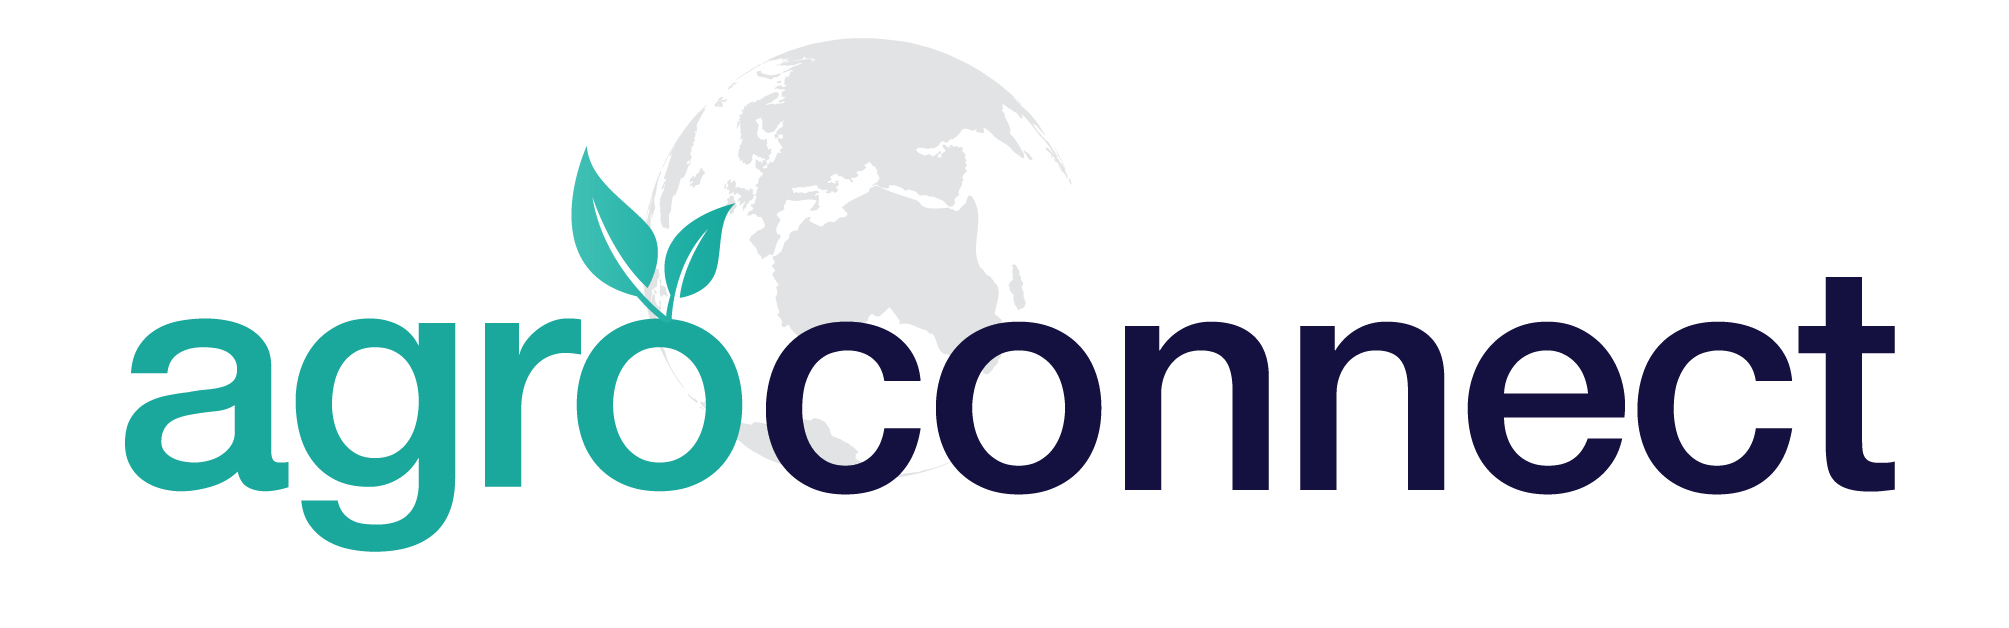 agroconnect logo